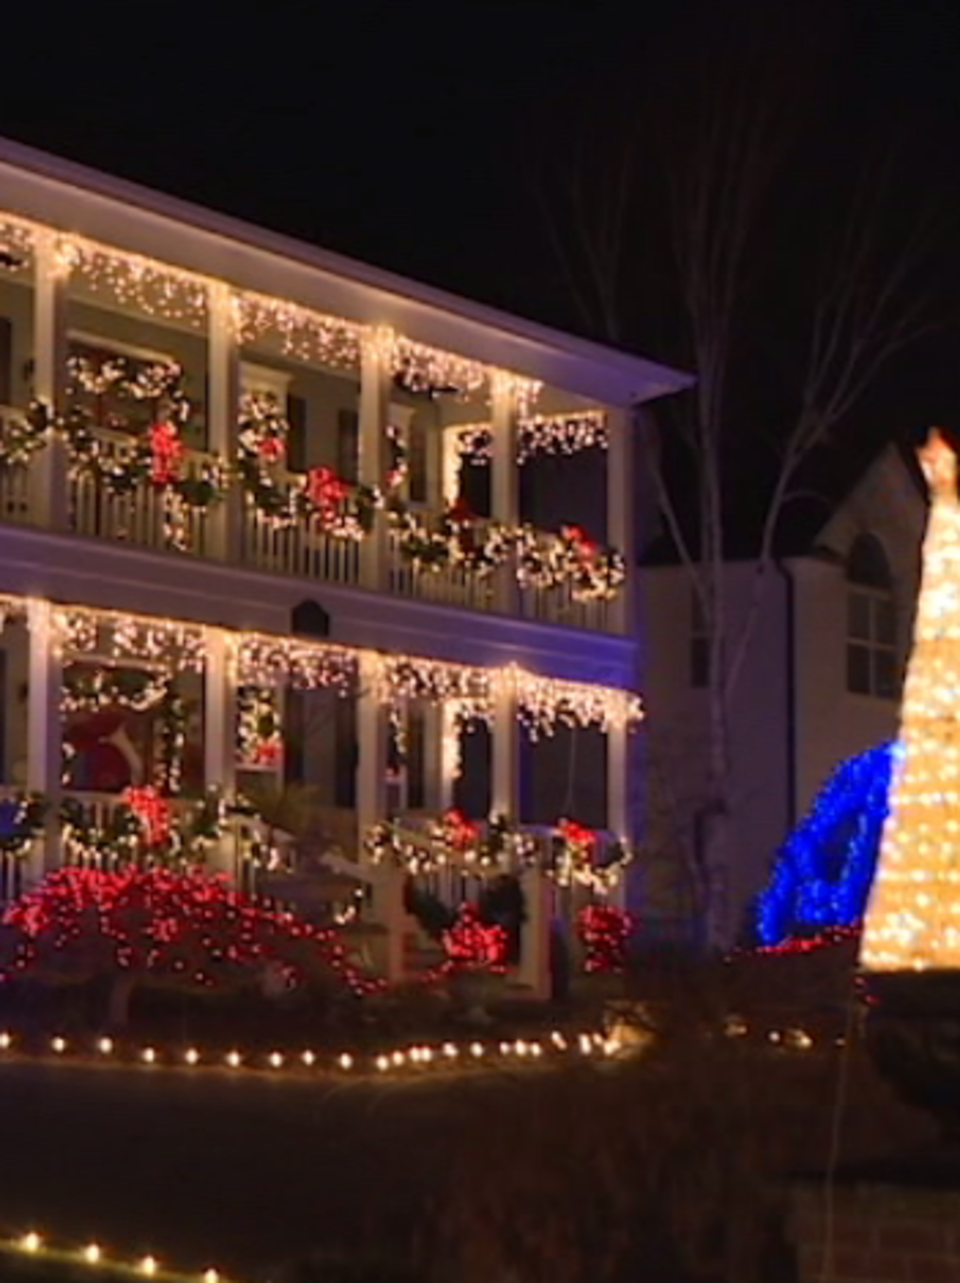 Greystone Court residents light up the